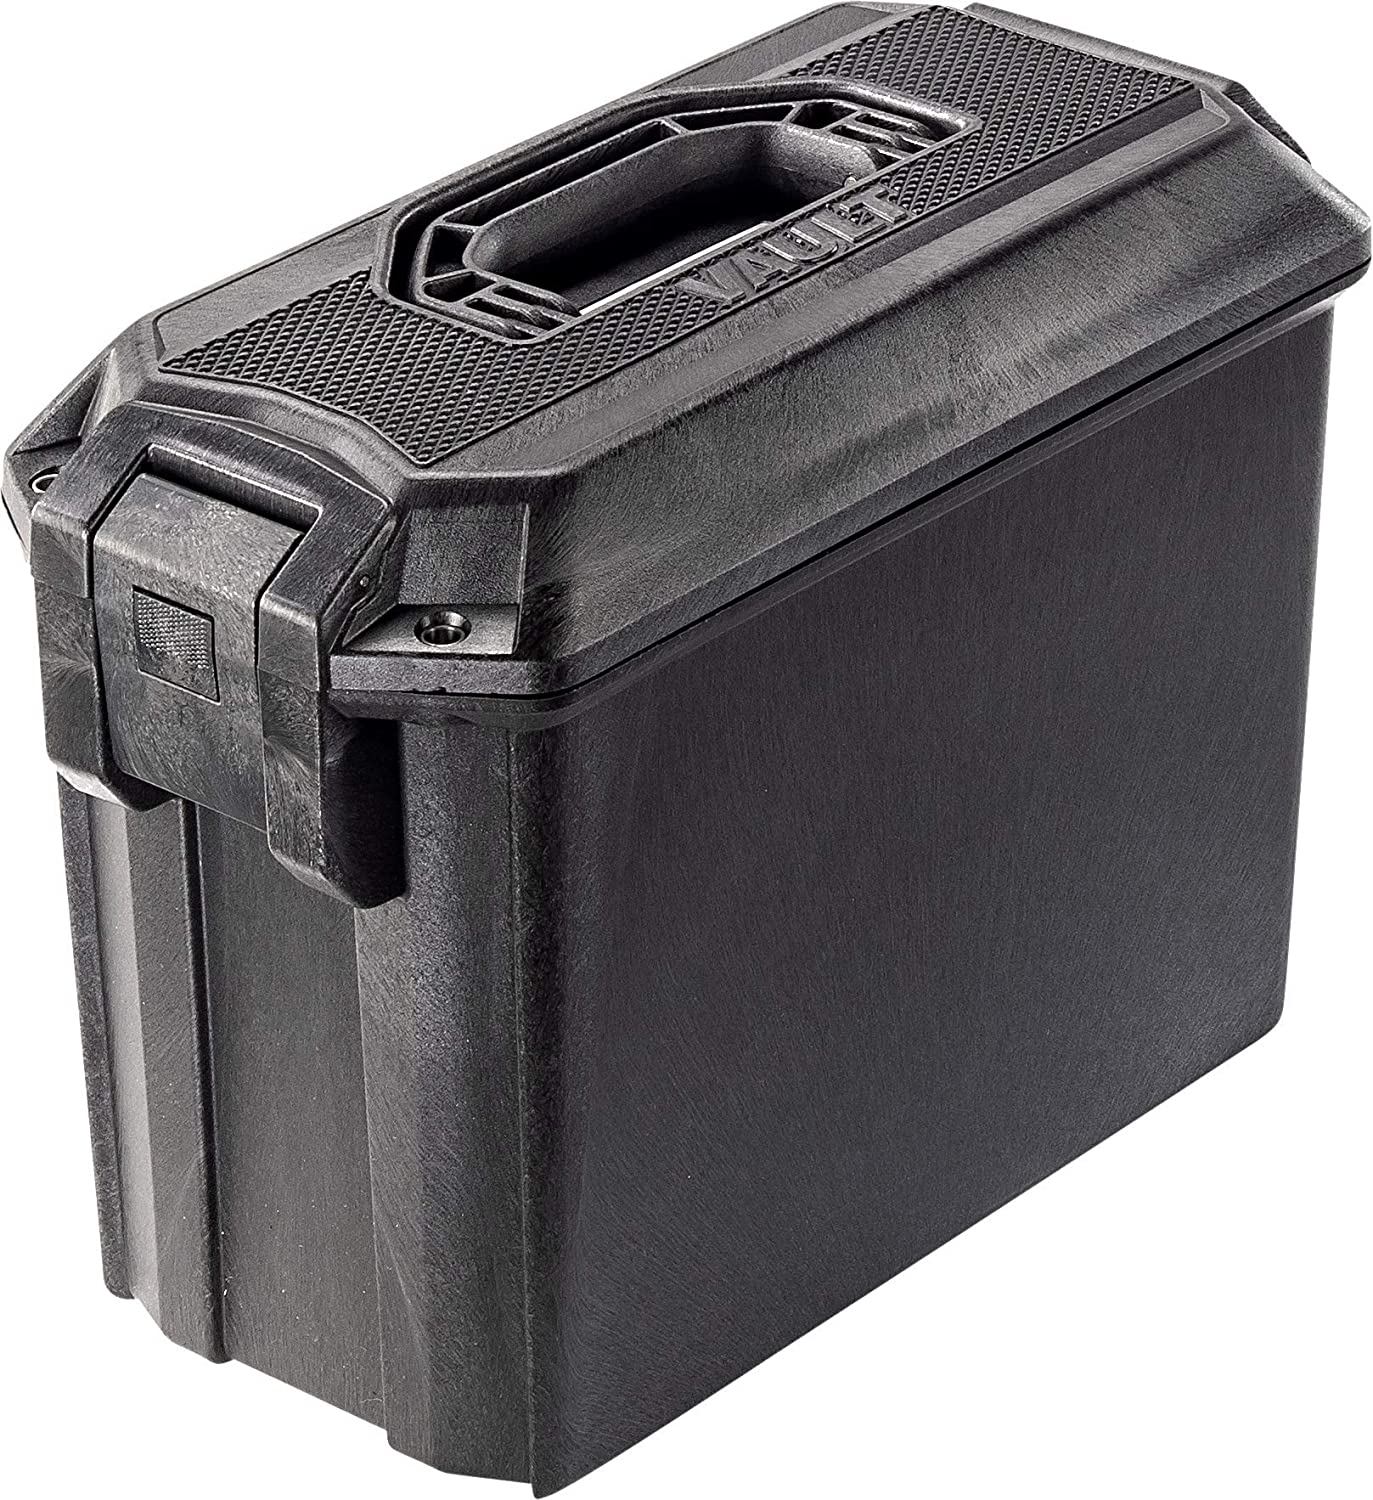 Vault by Pelican – V250 Ammo Case (Black)